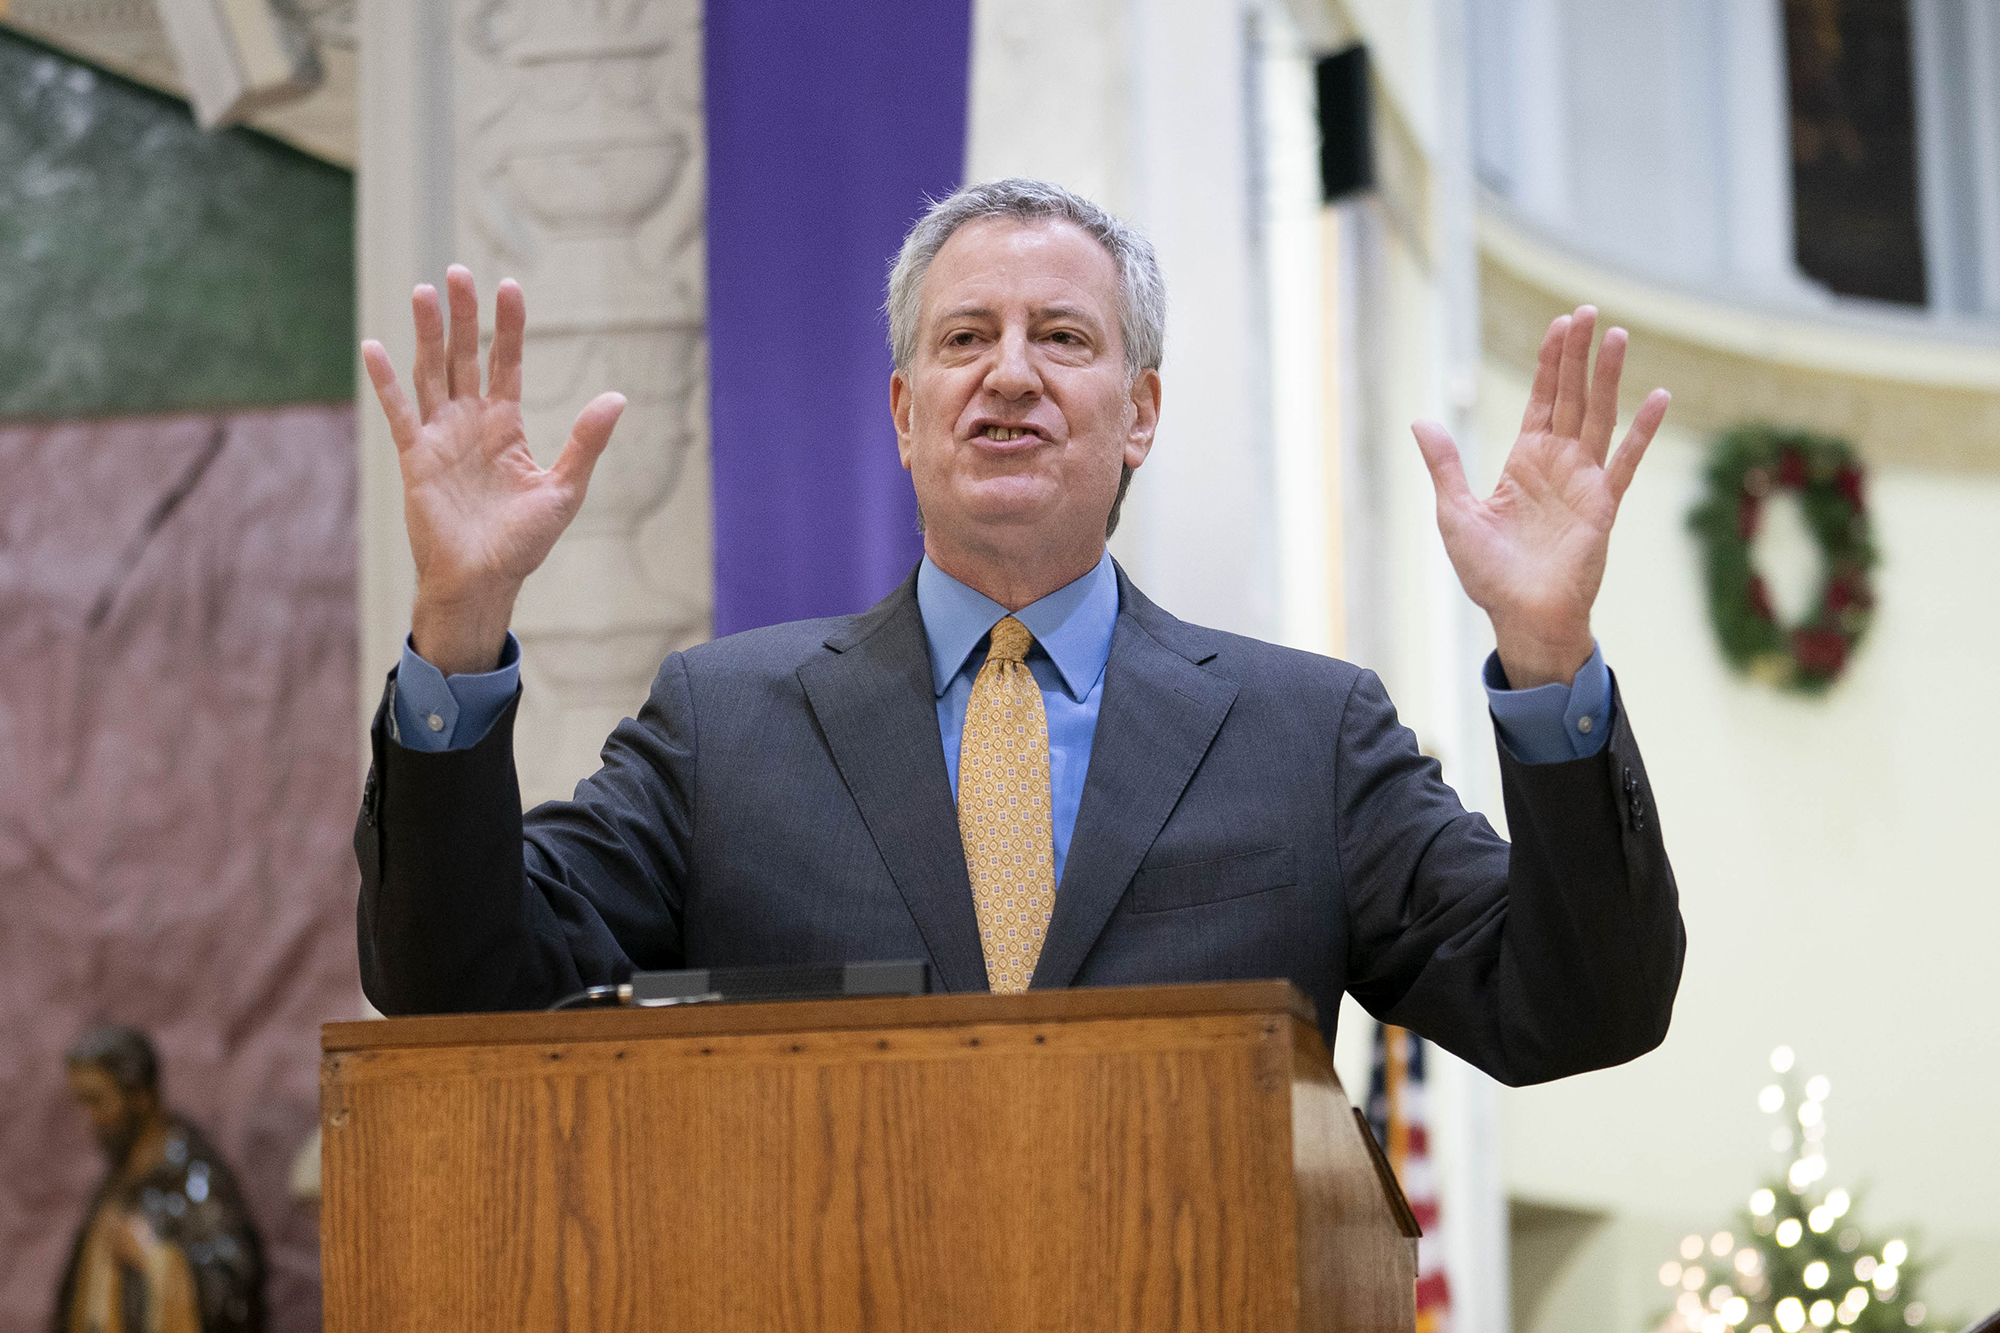 NYC could face 'full shutdown,' de Blasio warns